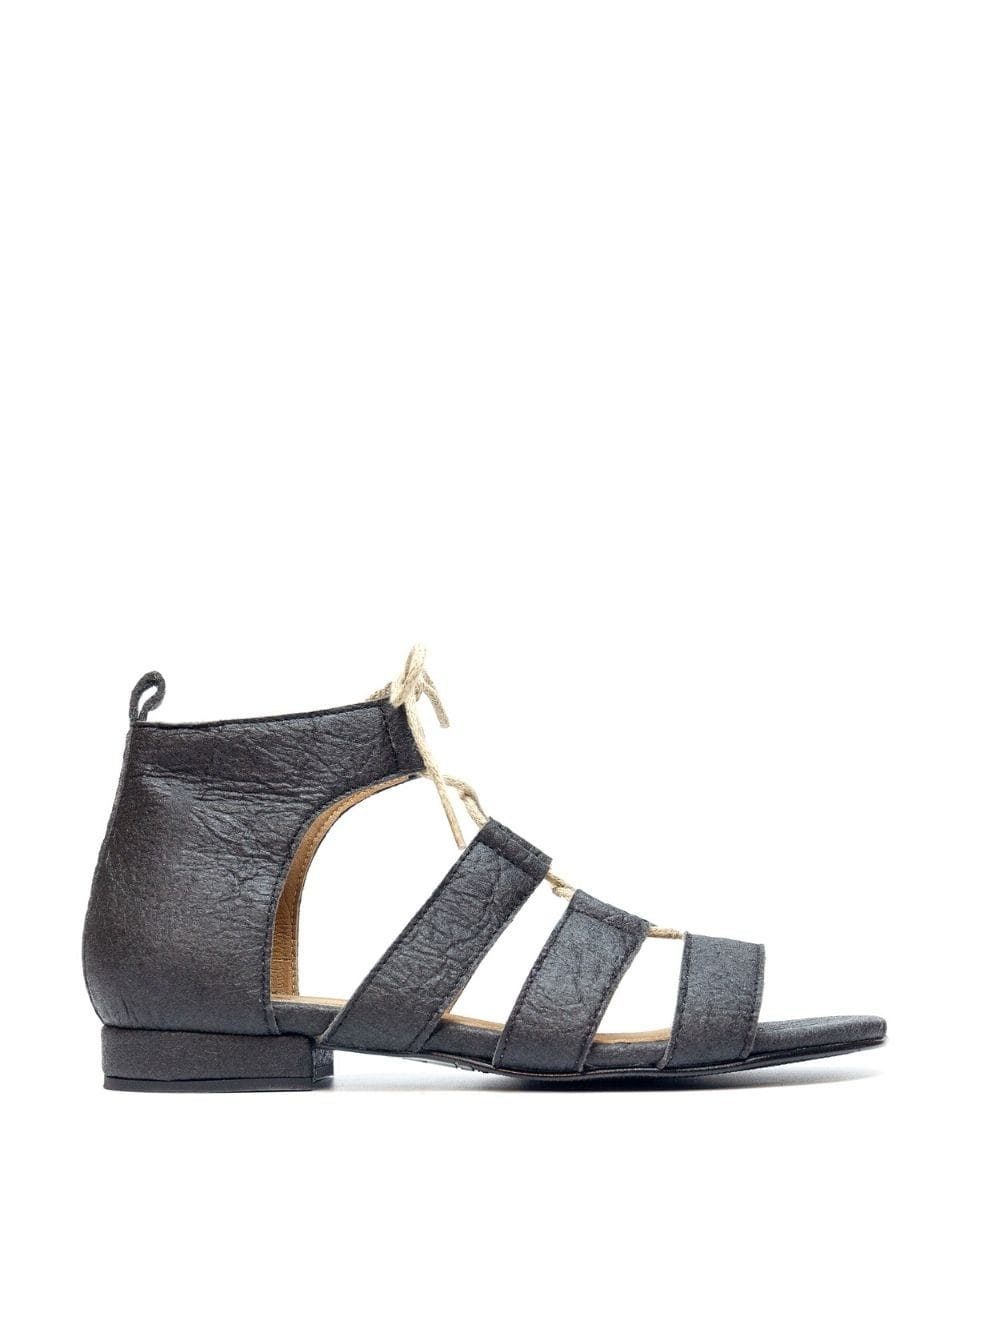 HERA - SANDAL WITH LACES